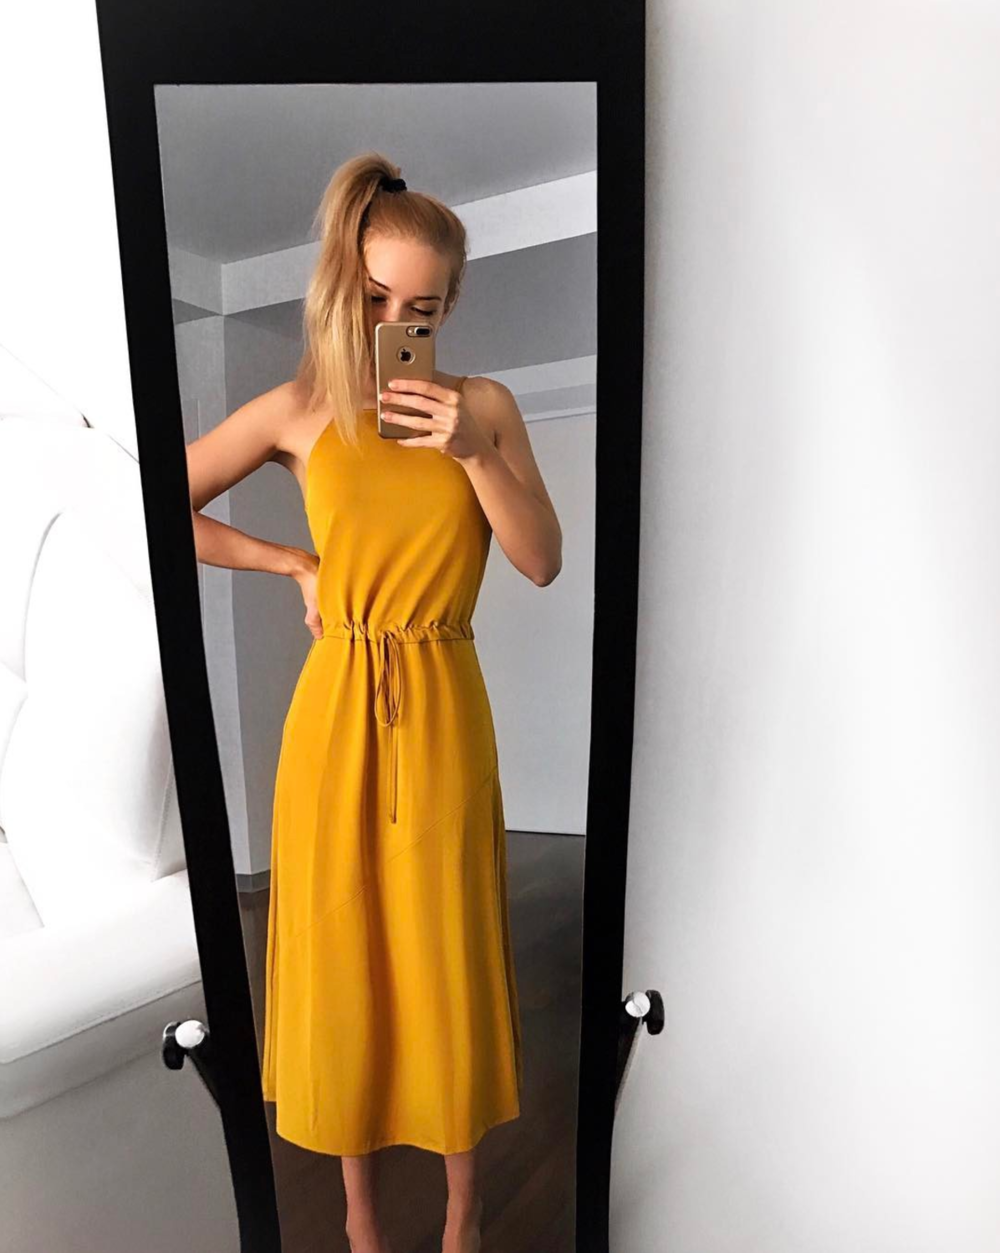 yellow satin dress blonde hair instagram miasoarez